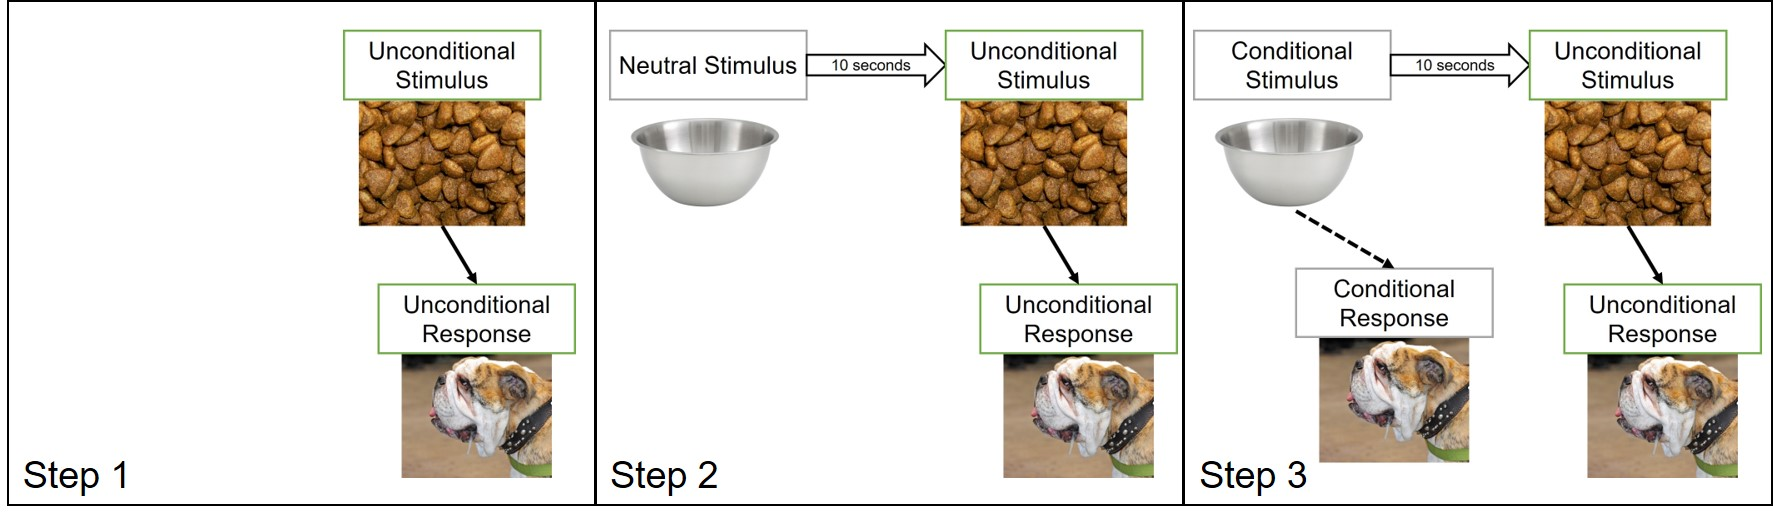 How we can classically condition a formerly neutral stimulus as a conditional stimulus